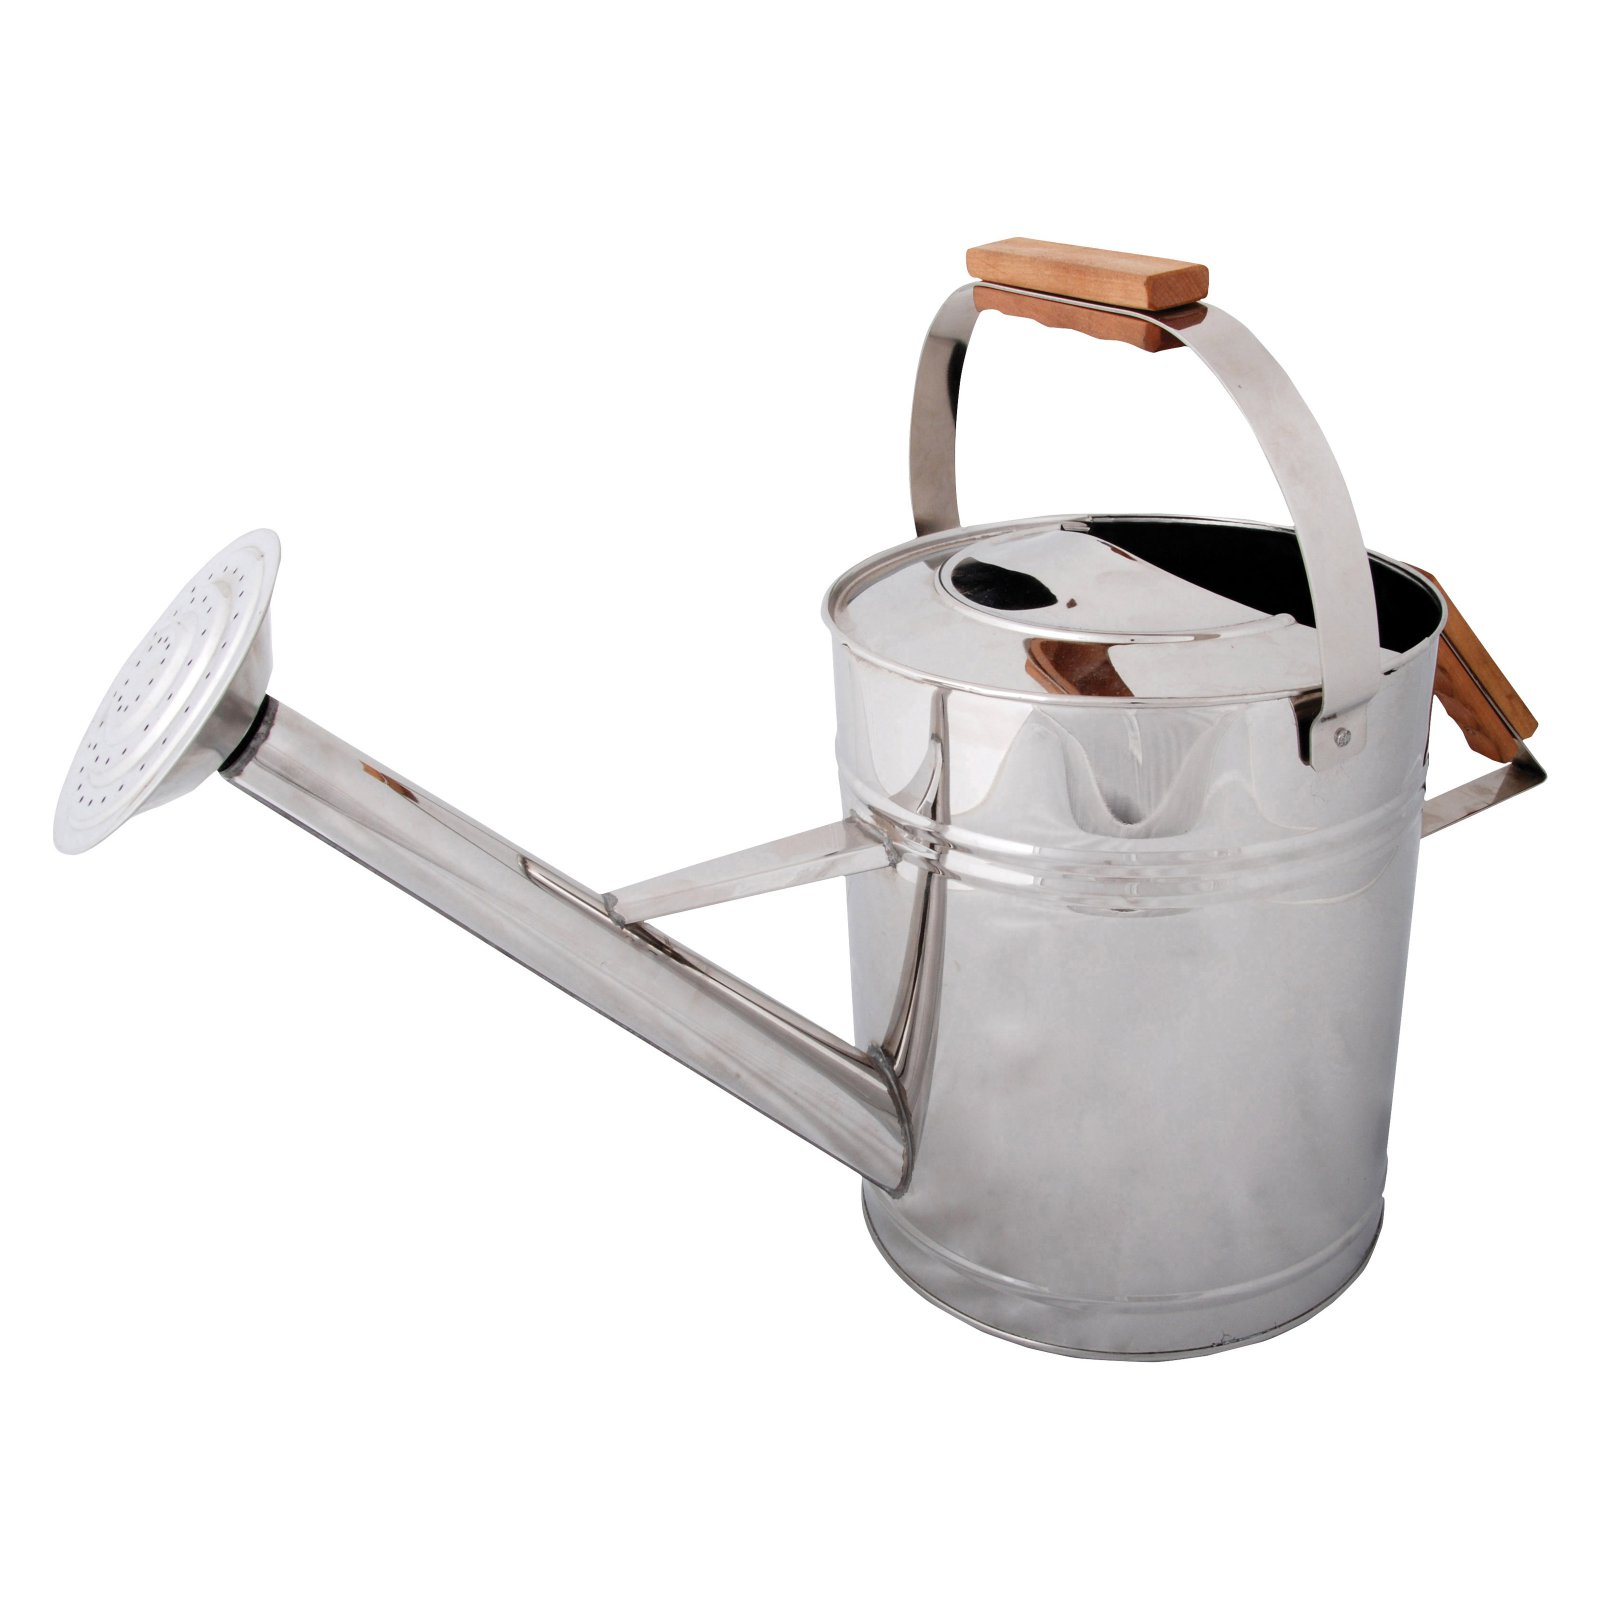 Esschert Design Stainless Steel Watering Can by Esschert Design USA LLC